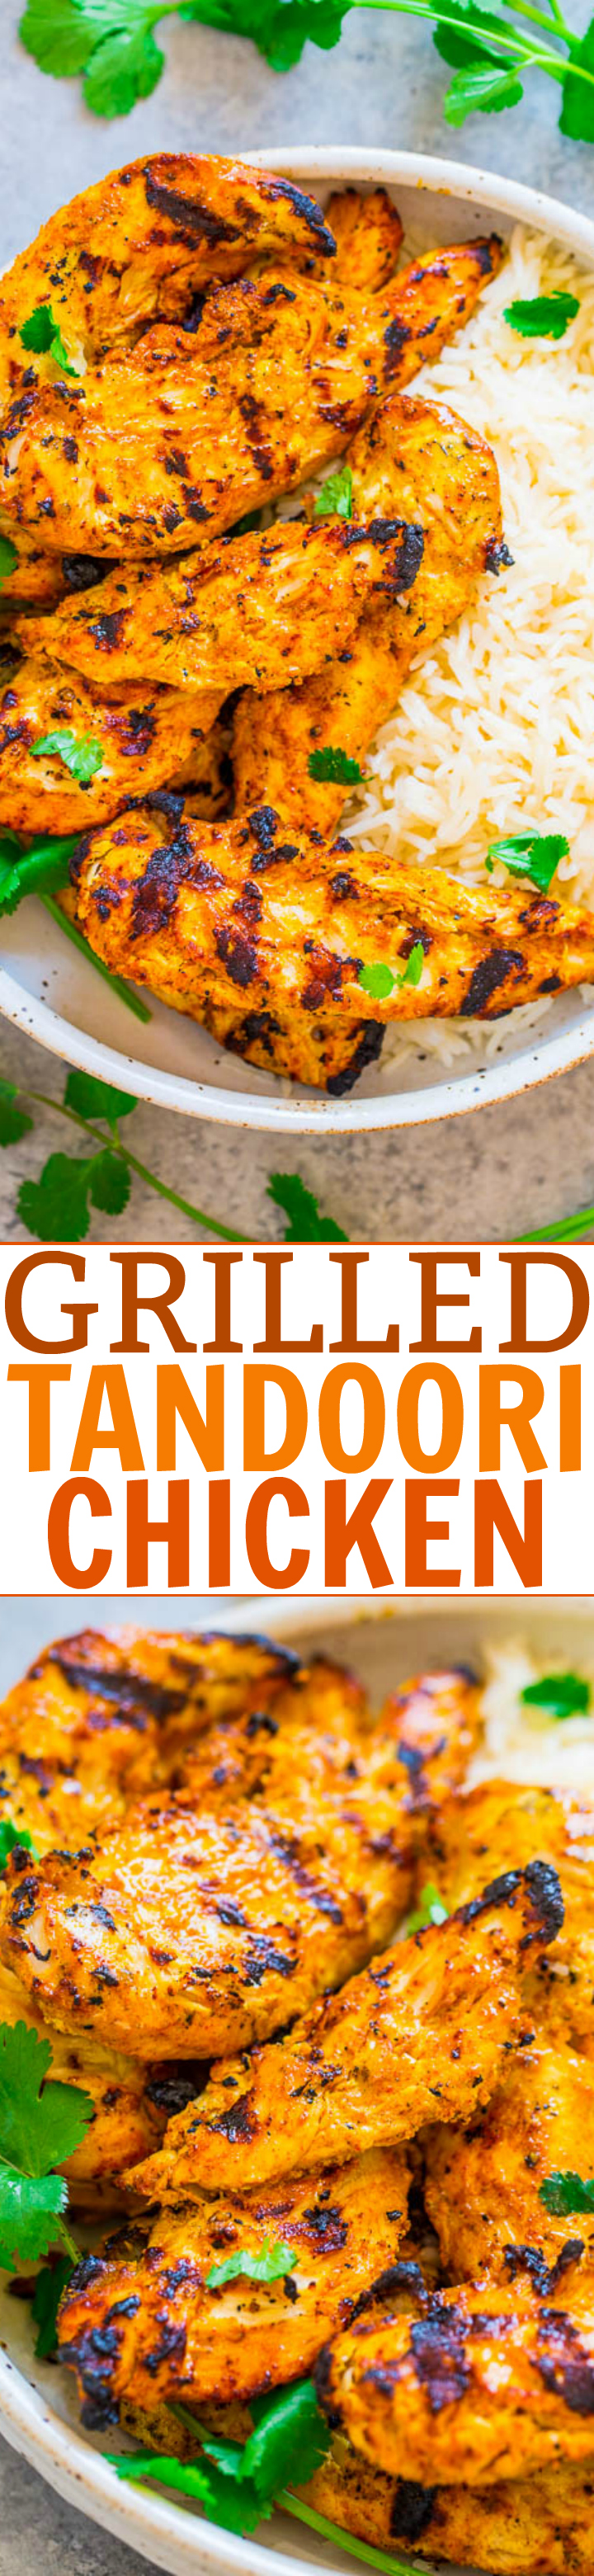 Grilled Tandoori Chicken - Recreate this Indian favorite QUICKLY and EASILY at home! If you're looking for a new twist on grilled chicken, this is THE recipe to try! Super juicy, tasty, and LOVE IT!